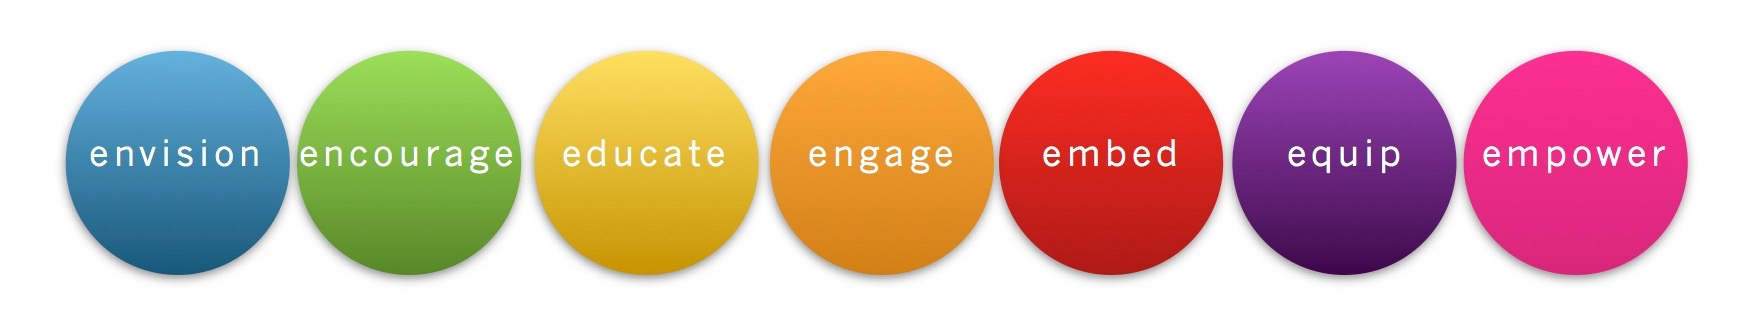 Envision, Encourage, Educate, Engage, Embed, Equip, Empower